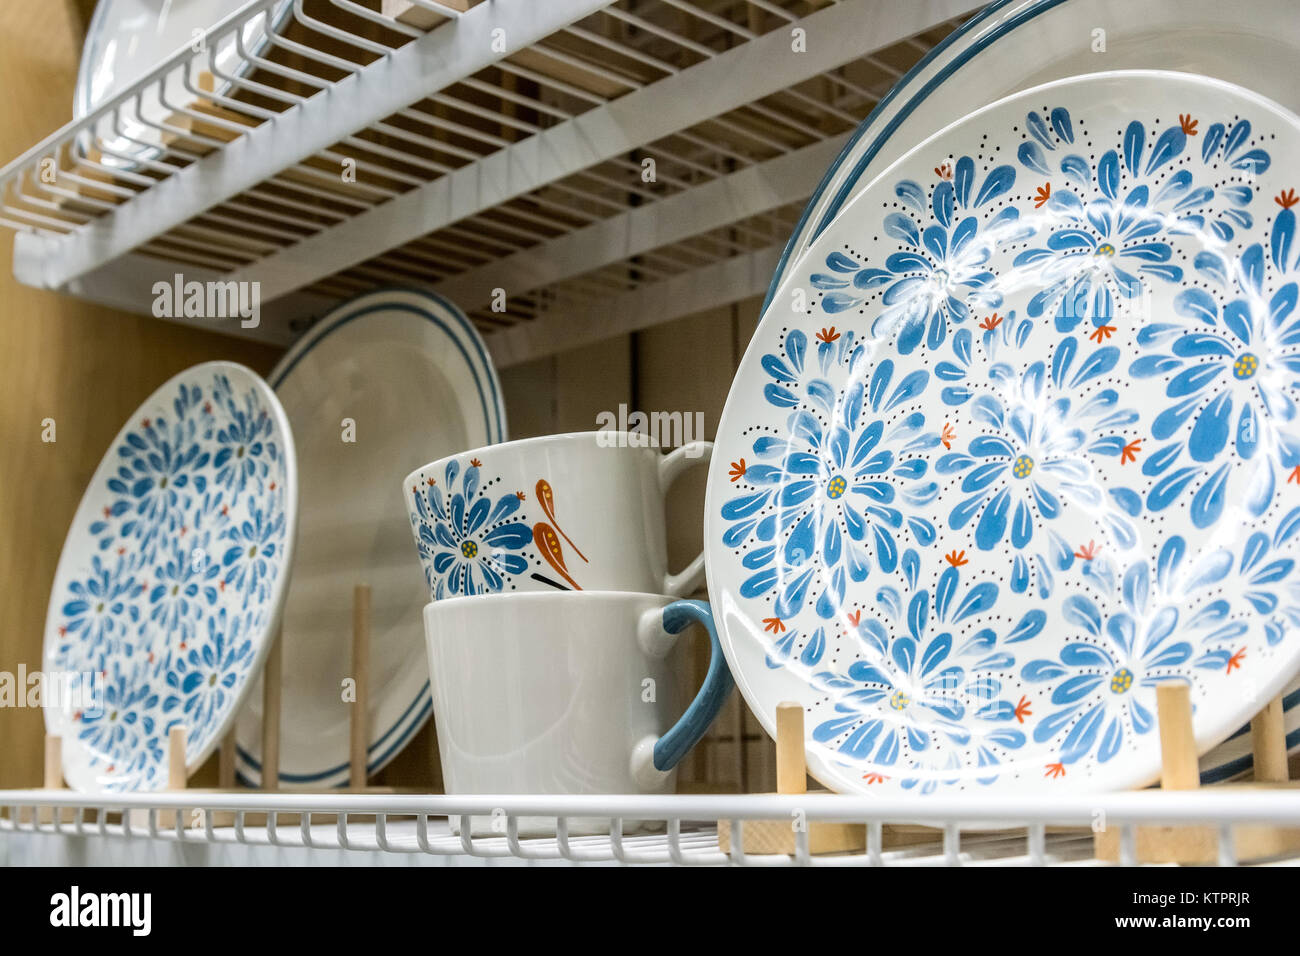 Close up several ceramic plates and cups with blue flower pattern on them standing on kitchen shelf : flower pattern dinnerware - pezcame.com